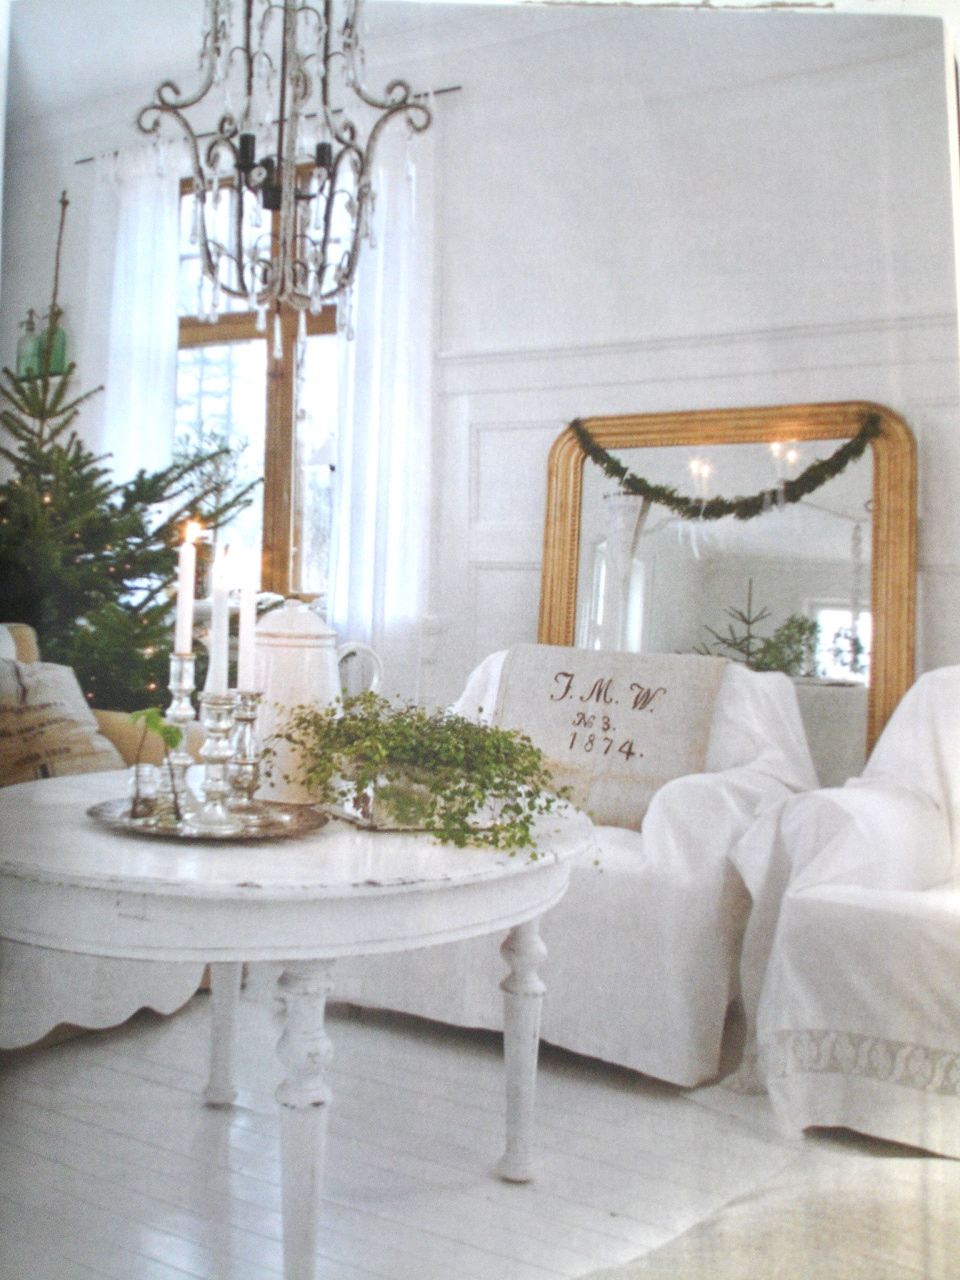 Romantic Homes Decorating: SHaBBy!: HoLiDay Decorating Issue